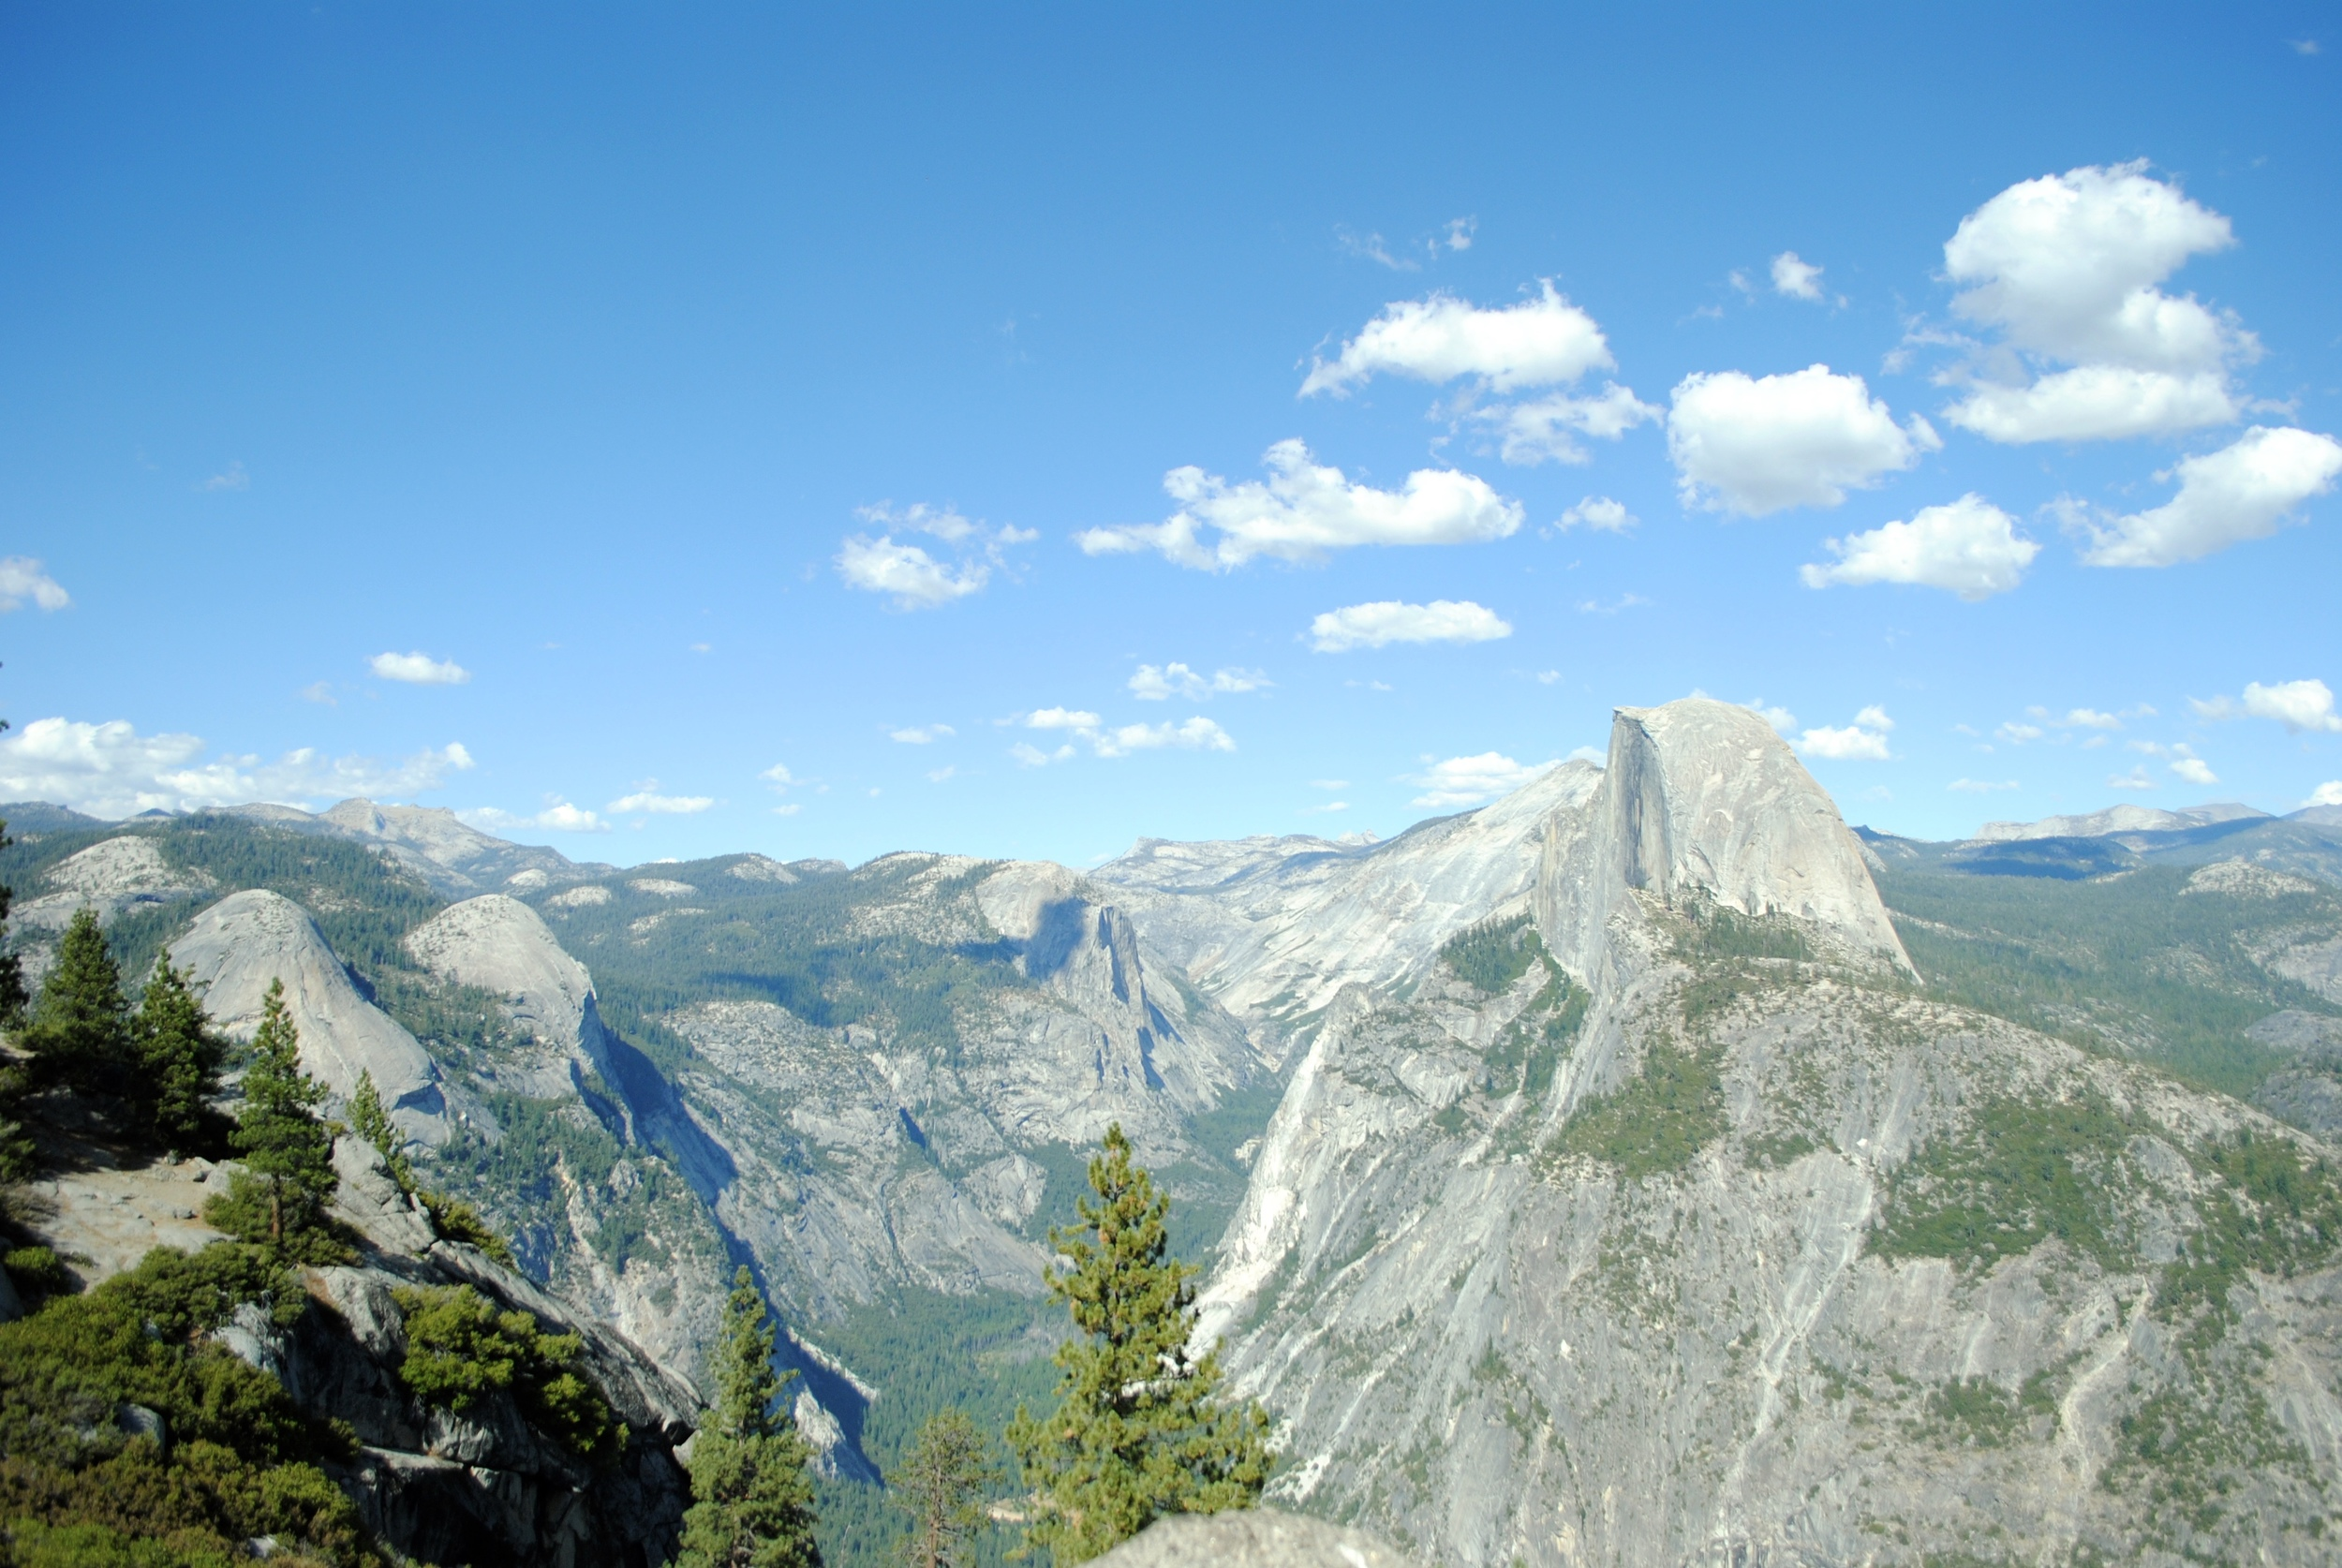 Views of Half Dome and the Yosemite Valley; a spectacular site!